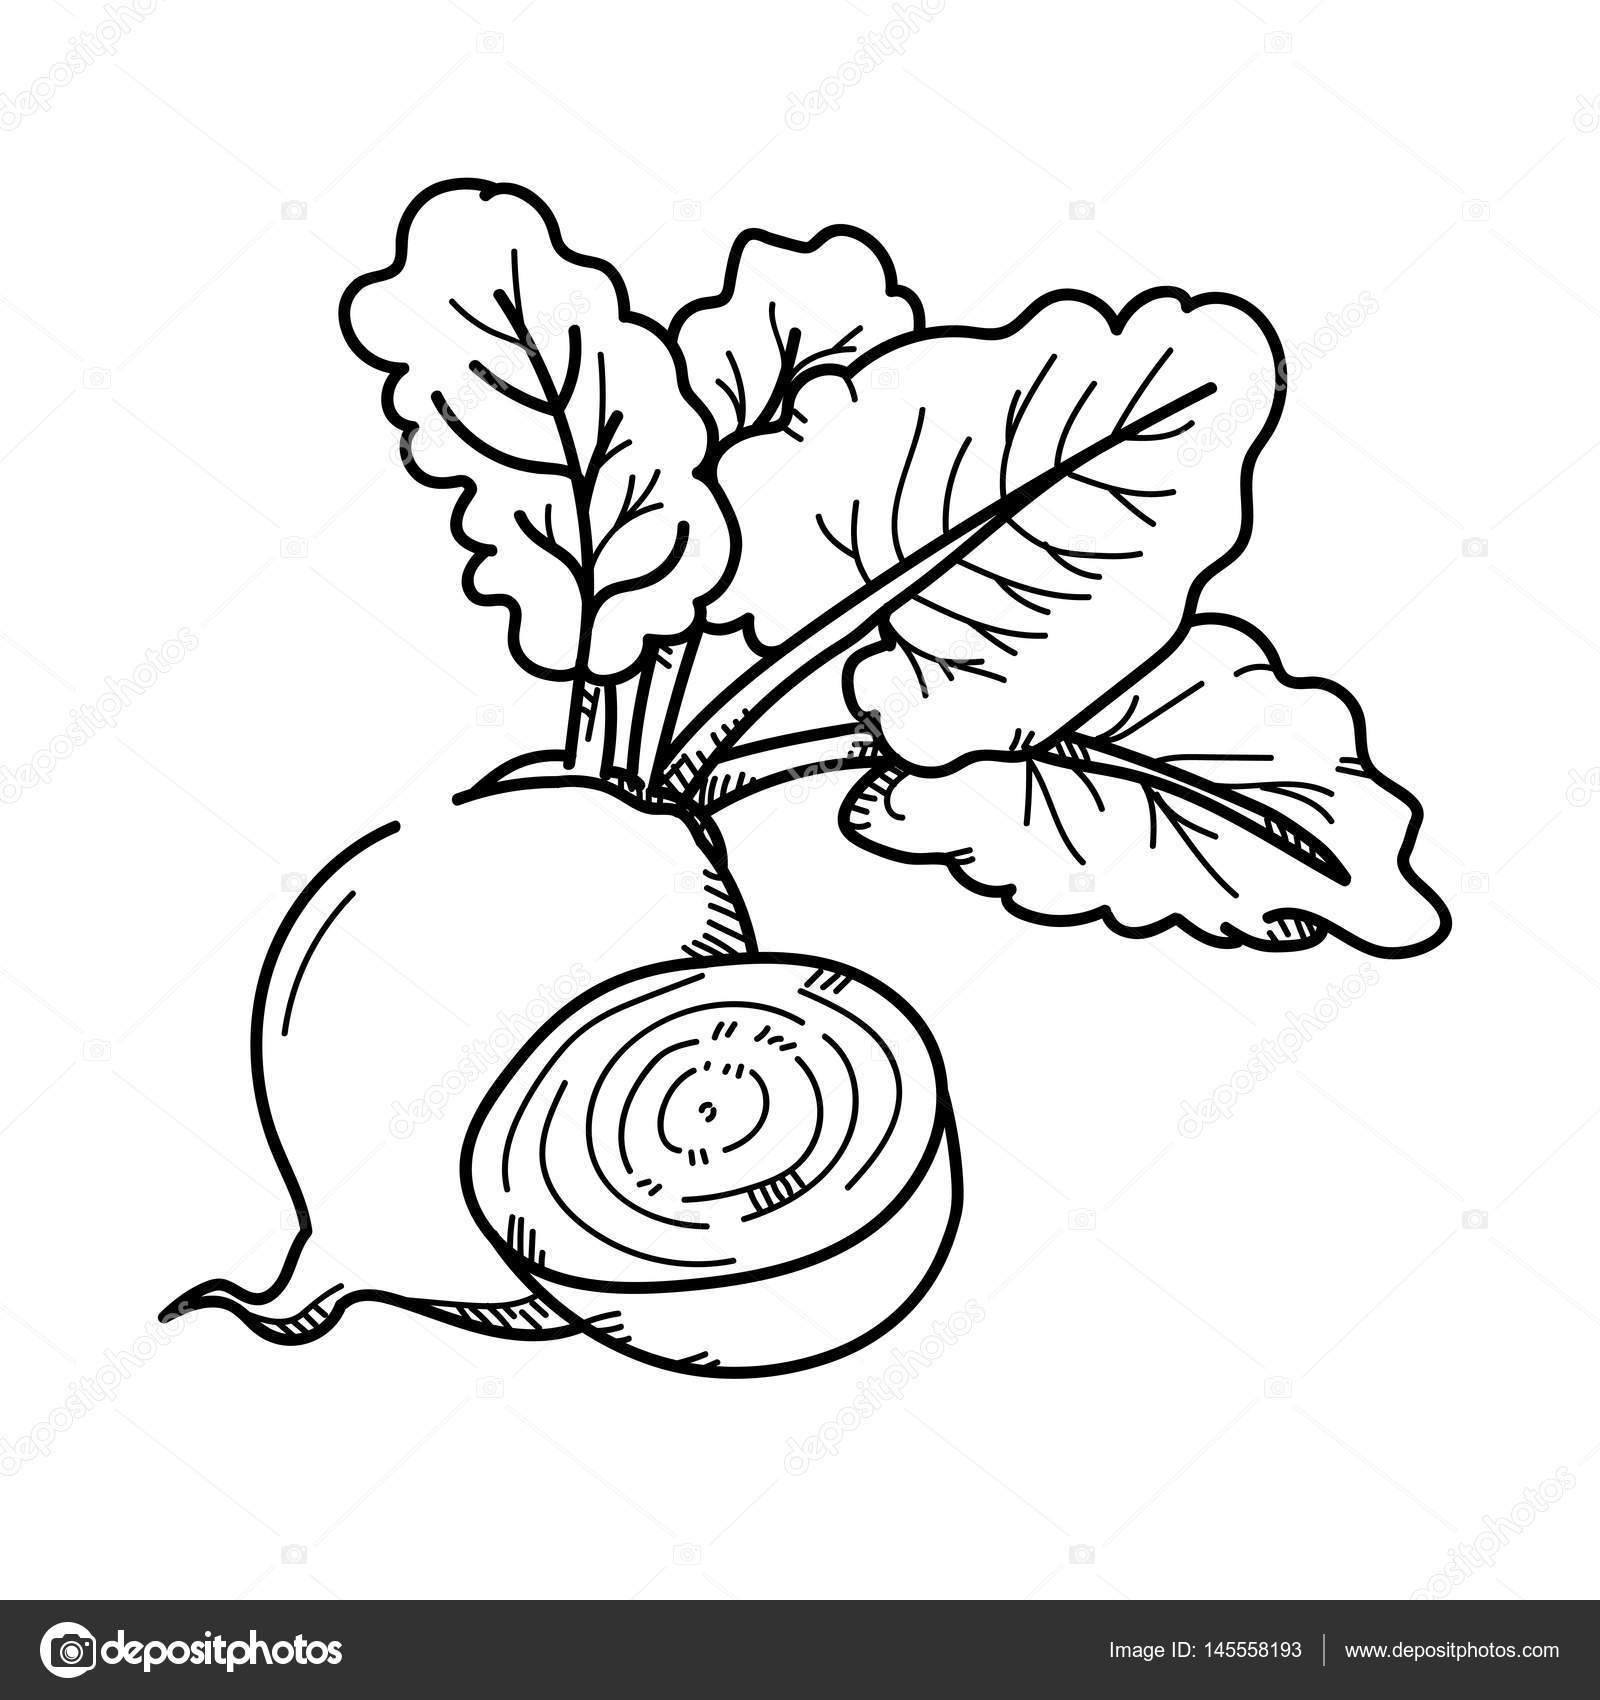 Freehand Drawing Illustration Beetroot Stock Photo